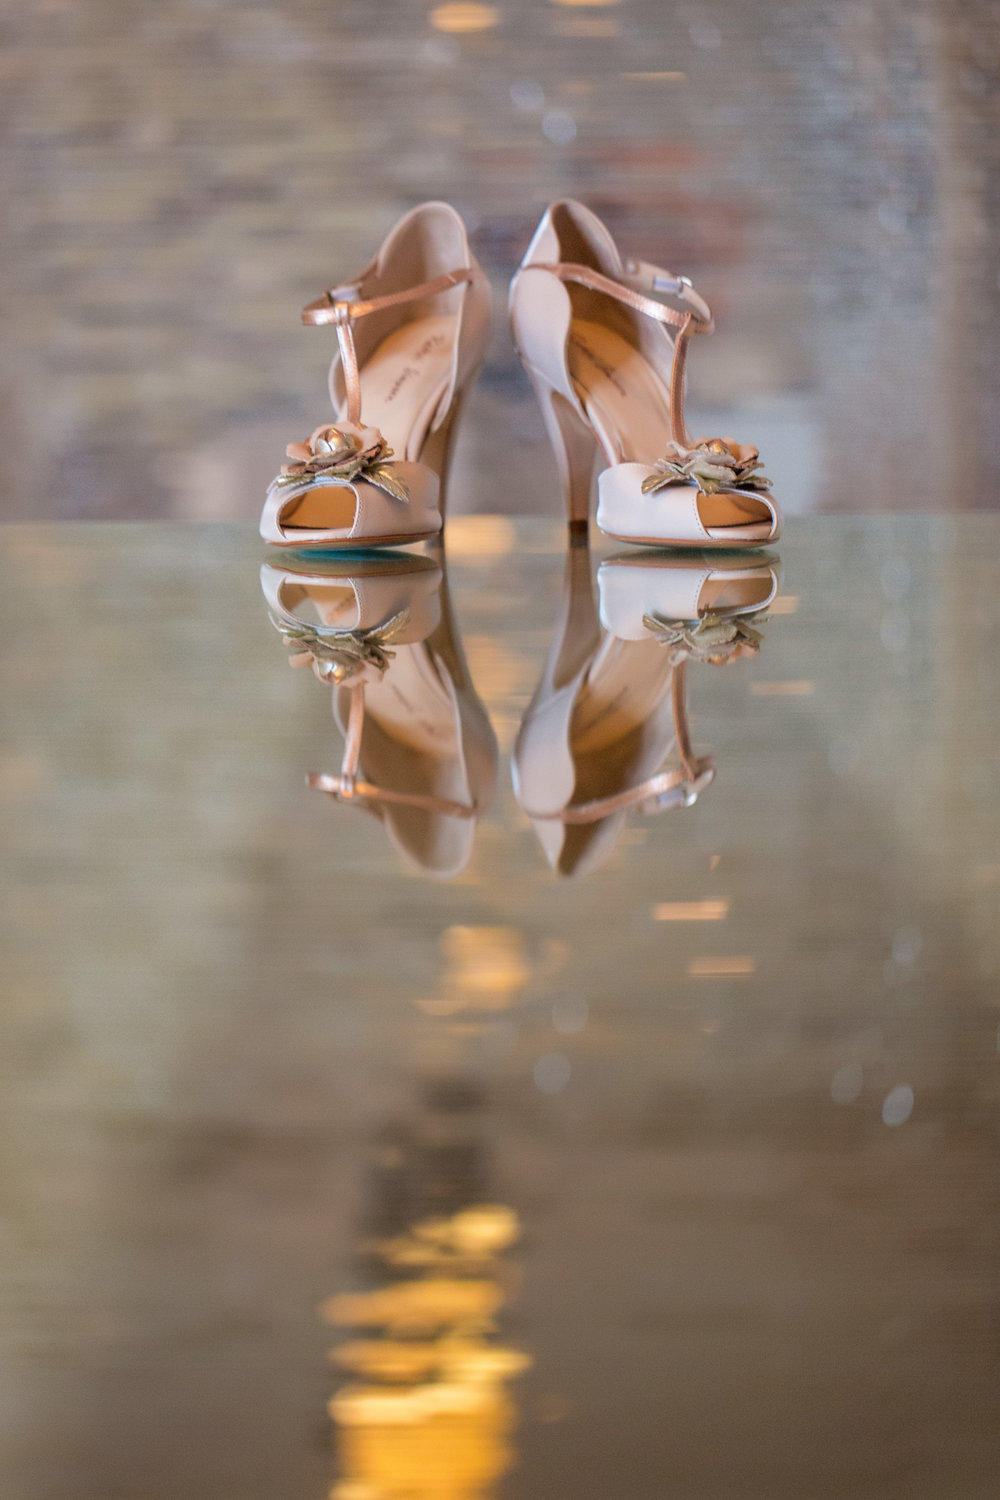 Pretty pink rosette wedding shoes. Wedding Planning by  Andrea Eppolito Events   ·  Photography by  Shandro Photo    ·  Wedding Venue  Four Seasons Las Vegas   ·  Floral and Decor by  Destination by Design   ·  Chandeliers and Lighting by  LED Unplugged